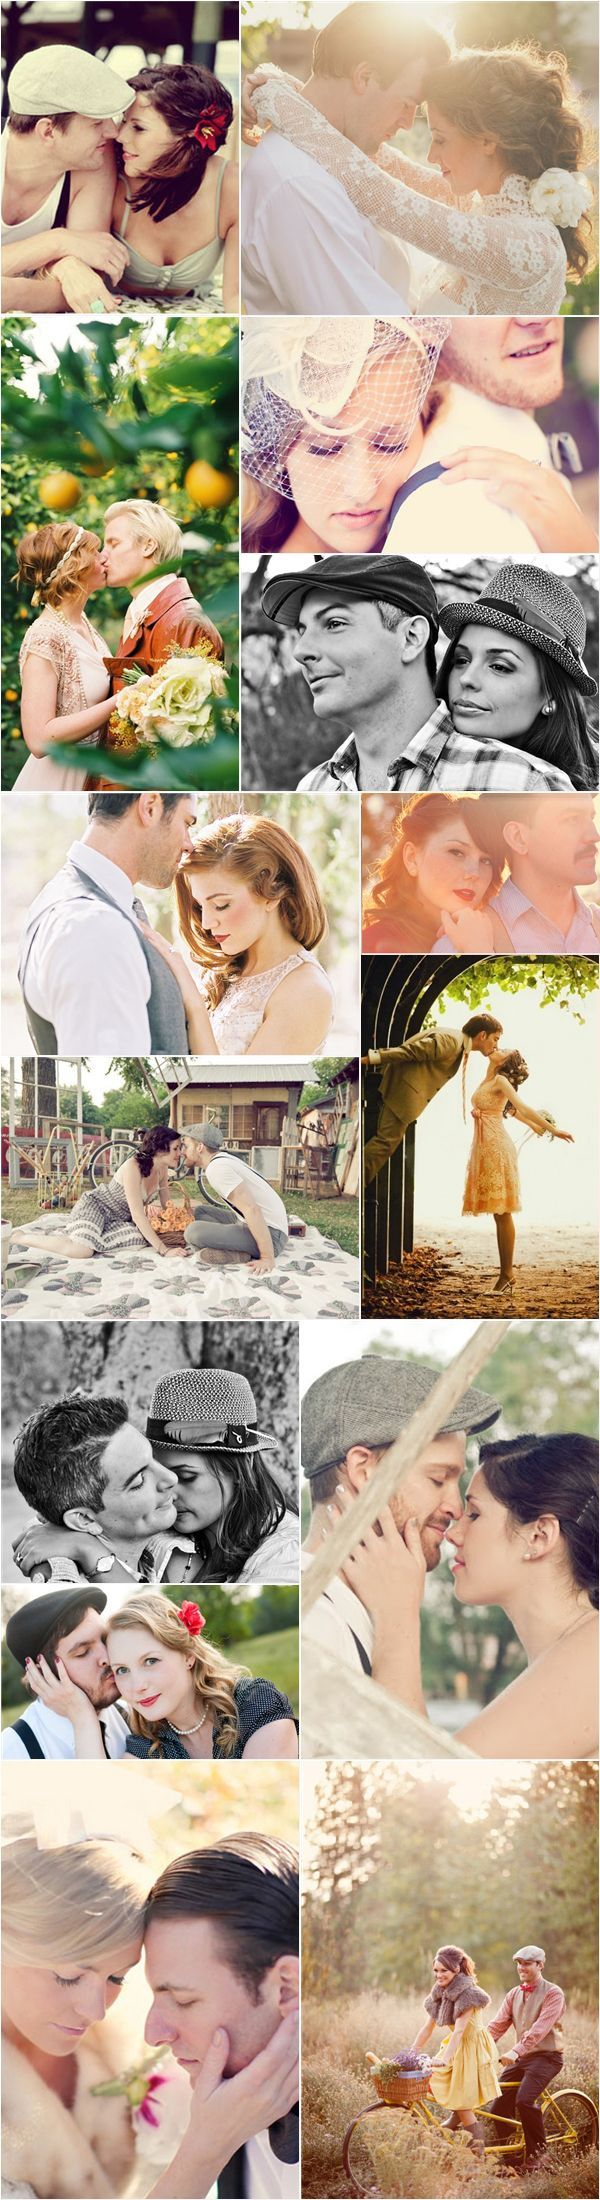 46 Beautiful Vintage-Inspired Engagement Photos - Romantic